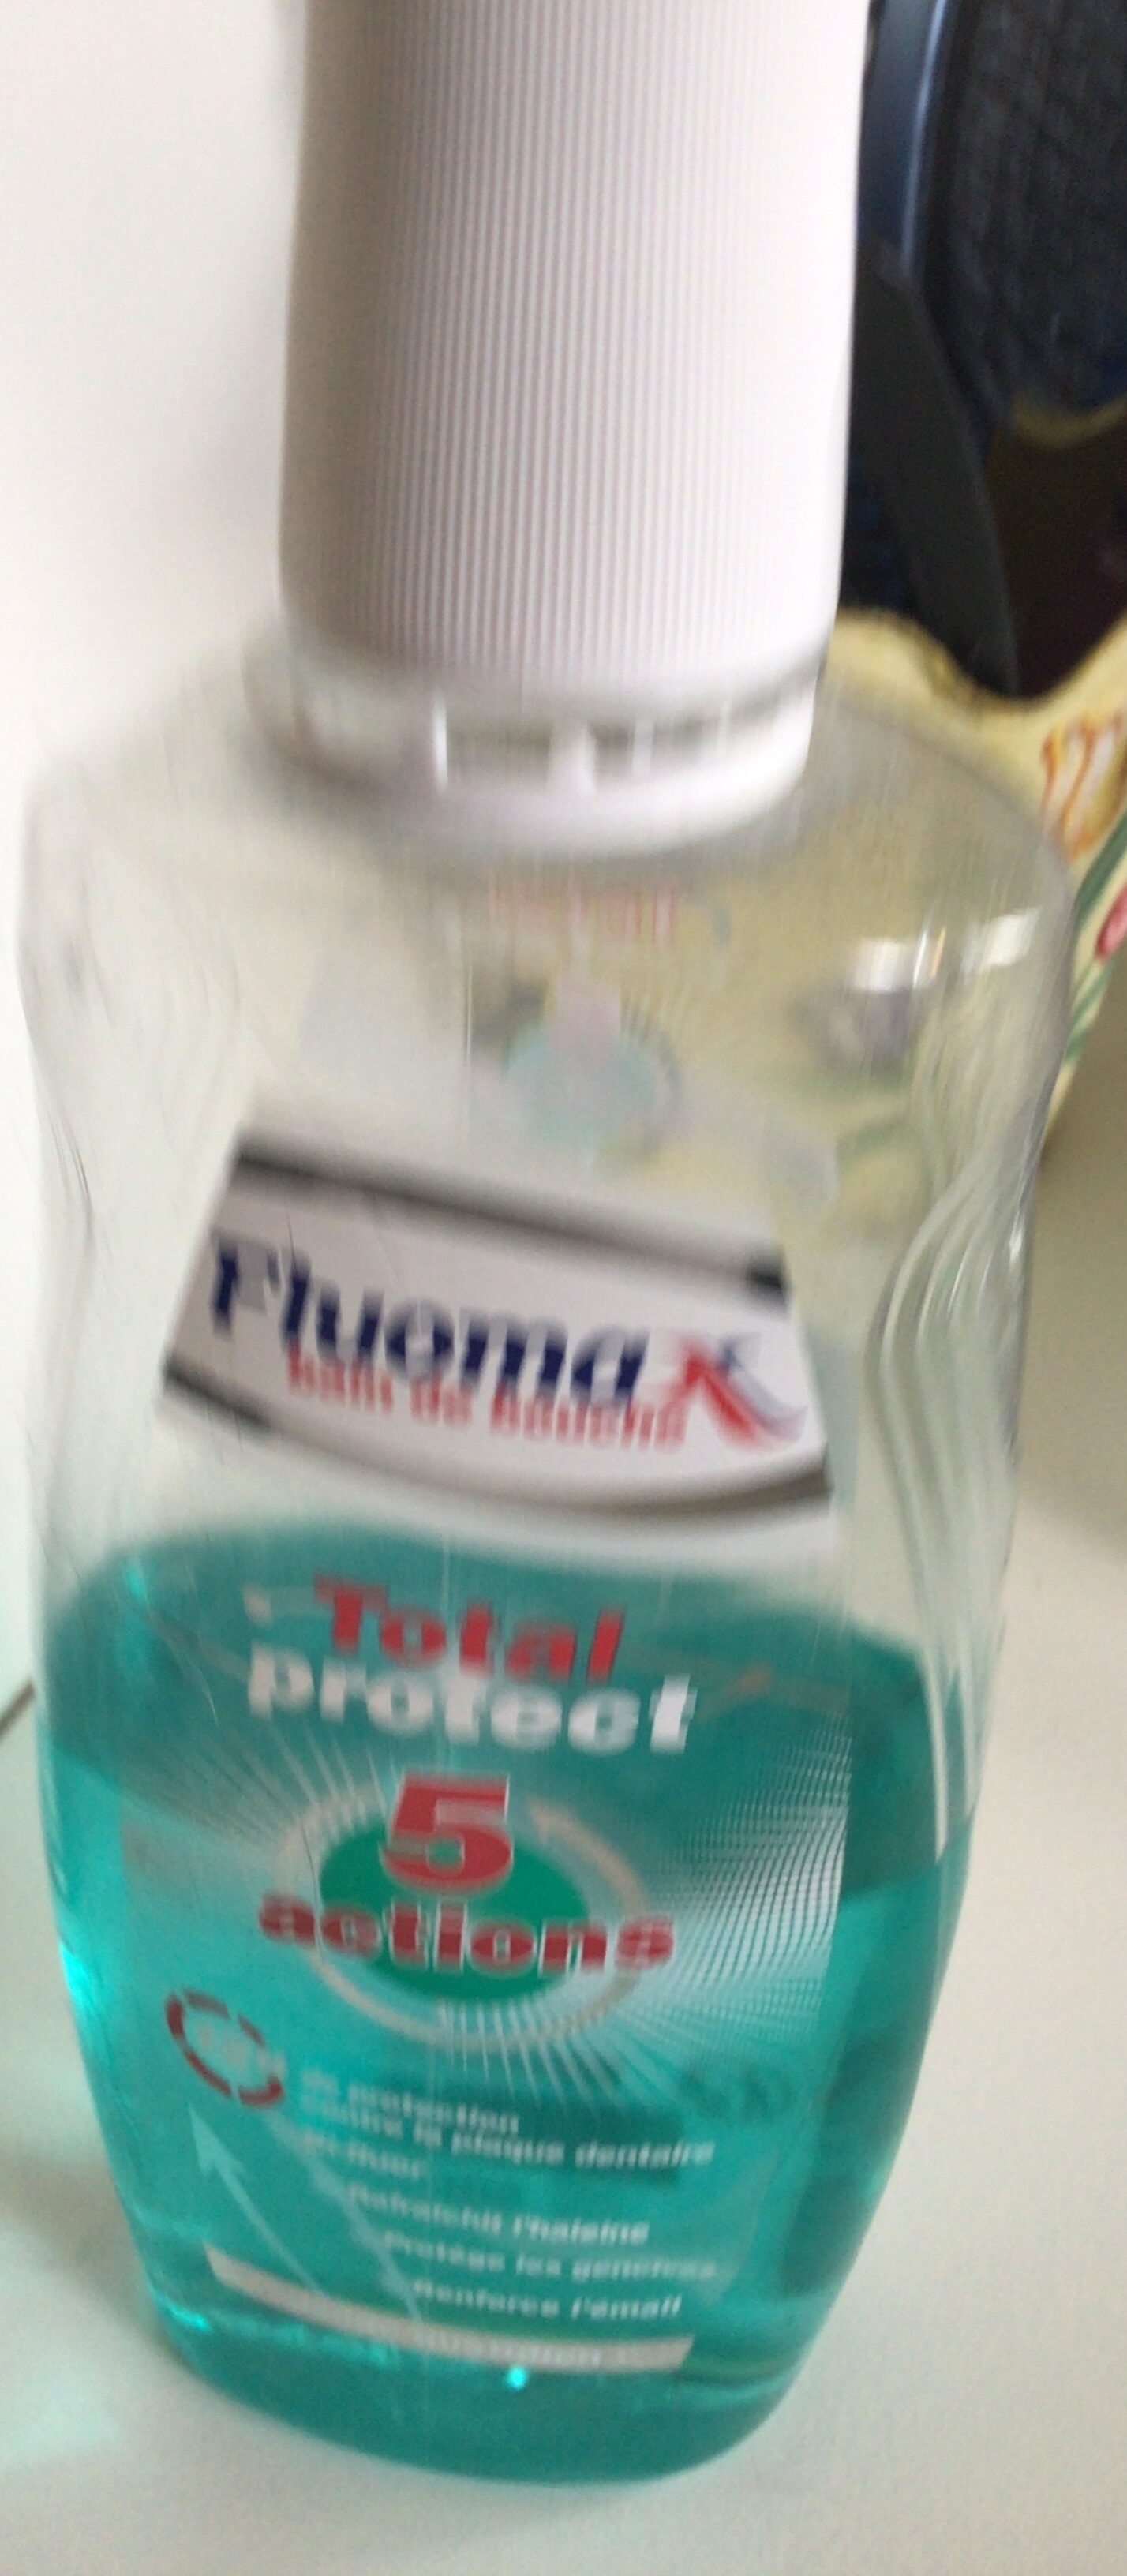 Fluomax - Product - fr